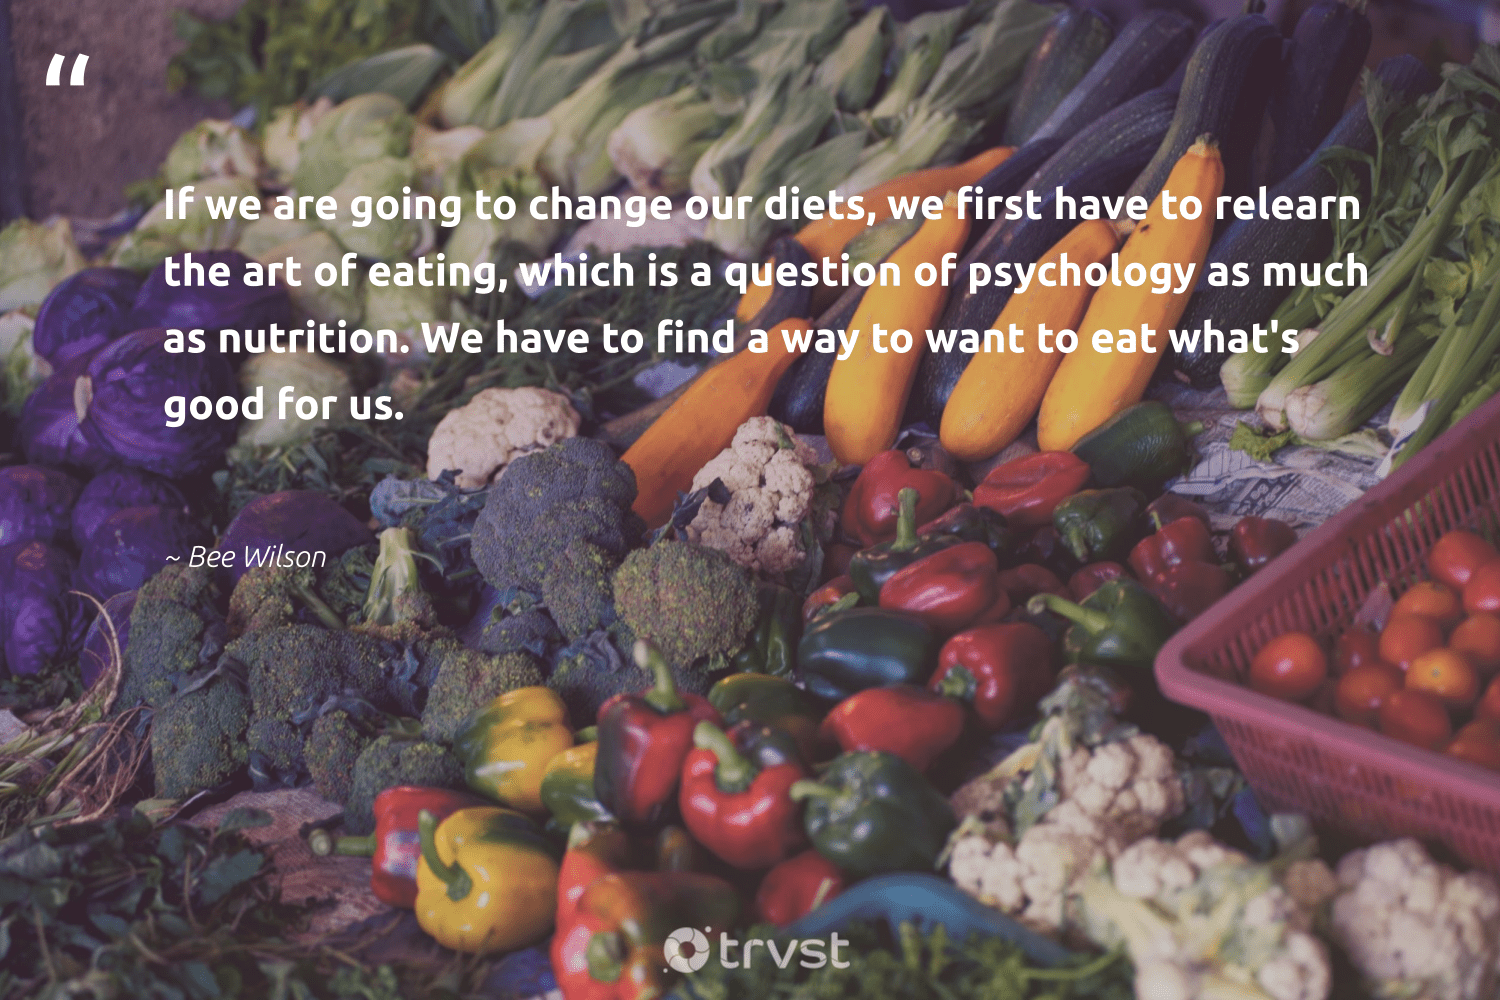 """If we are going to change our diets, we first have to relearn the art of eating, which is a question of psychology as much as nutrition. We have to find a way to want to eat what's good for us.""  - Bee Wilson #trvst #quotes #eatclean #nutrition #changemakers #health #dotherightthing #healthylifestyle #togetherwecan #begreat #dosomething #healthyeating"